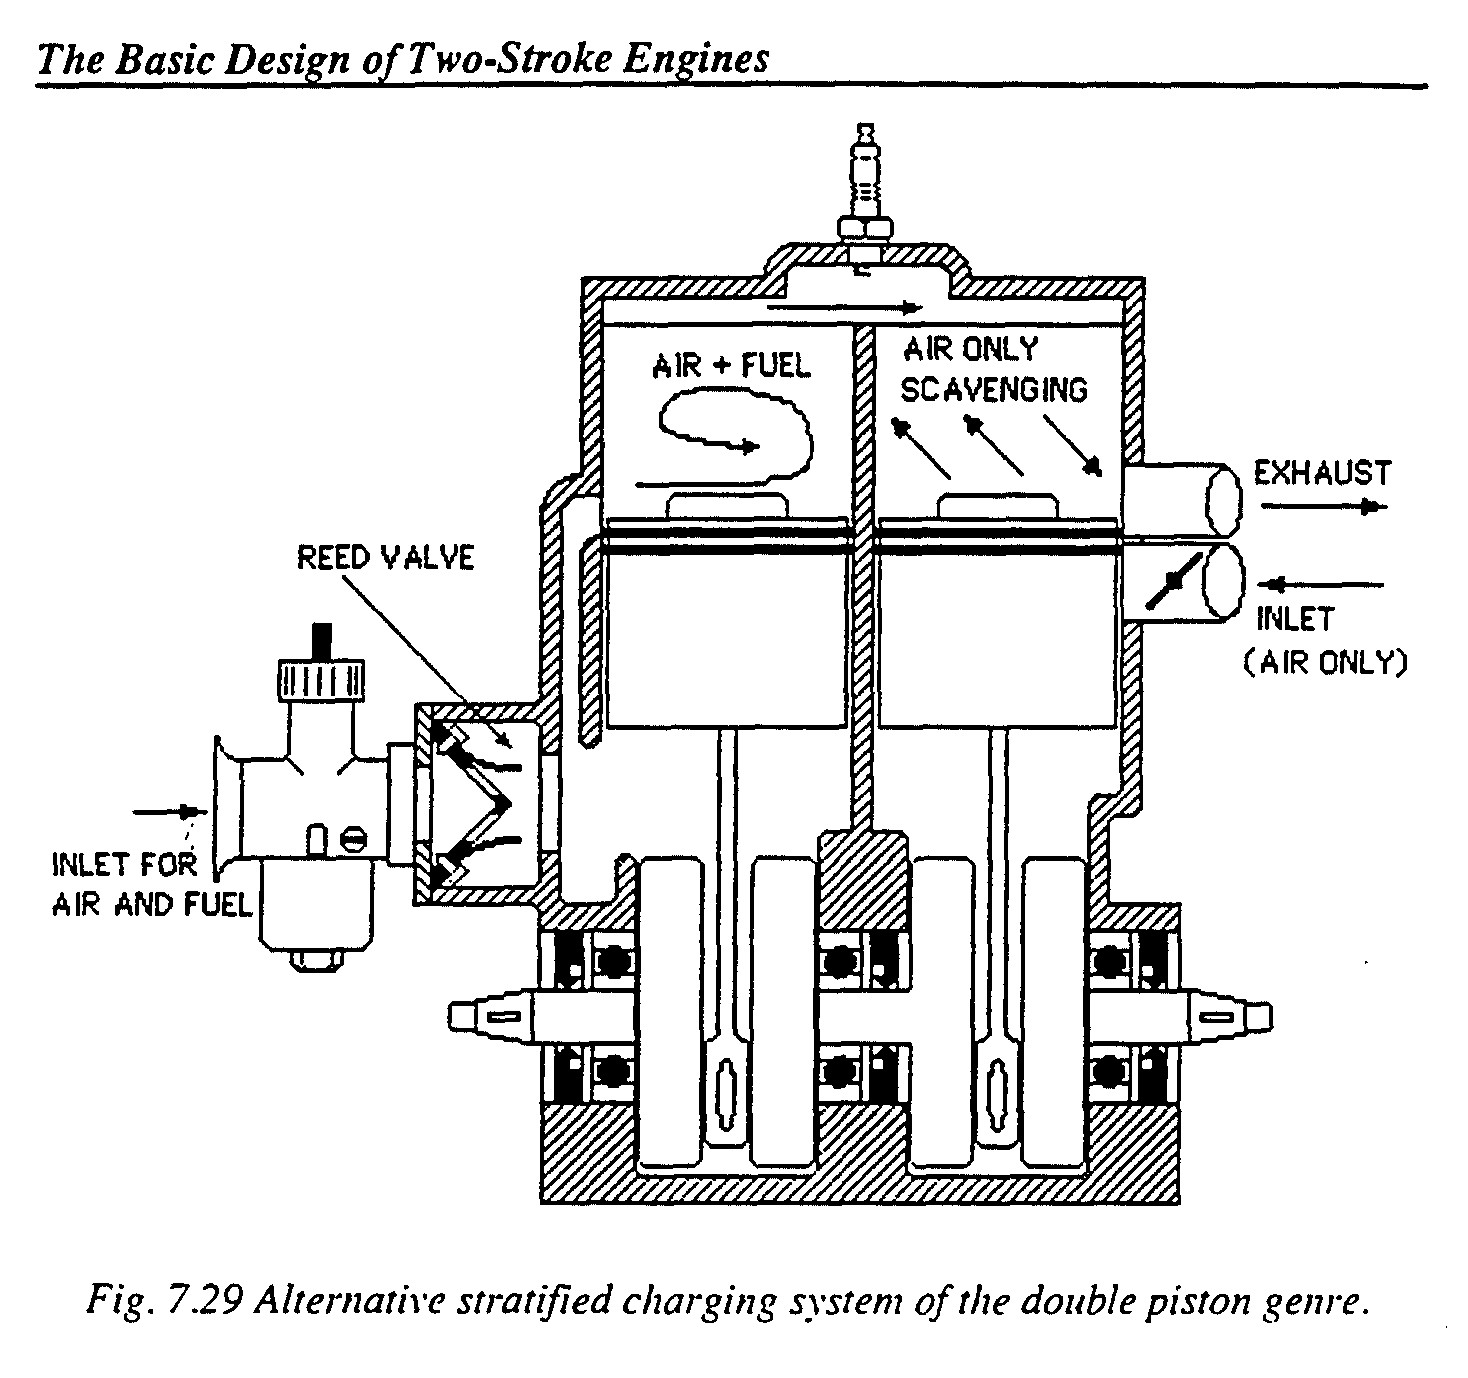 Diagram Of Four Stroke Engine Wo A1 Two Cycle Engine with Reduced Hydrocarbon Emissions Of Diagram Of Four Stroke Engine